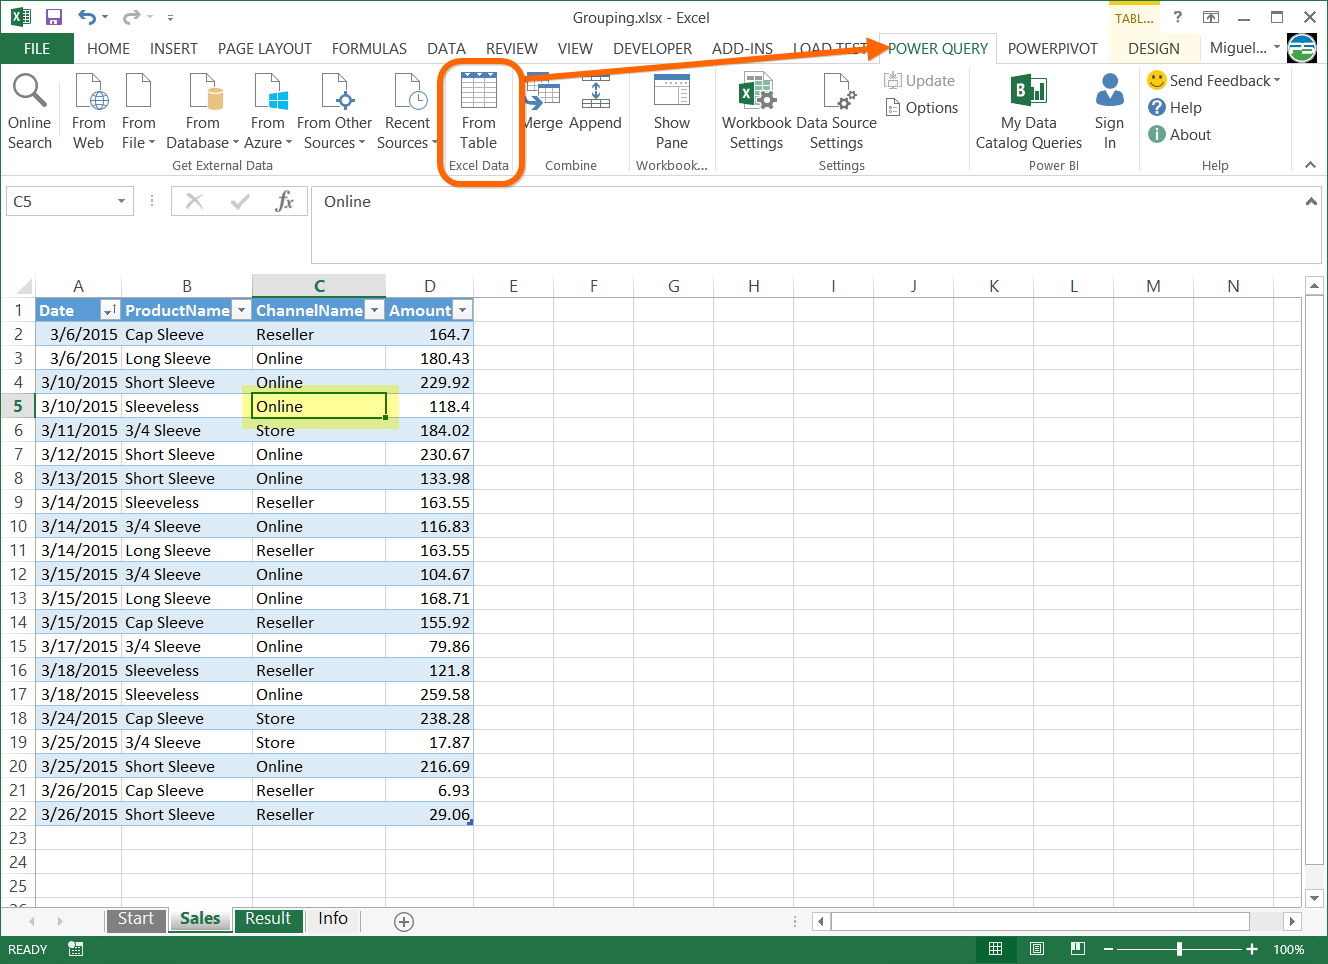 How To Share An Excel Spreadsheet Between Multiple Users